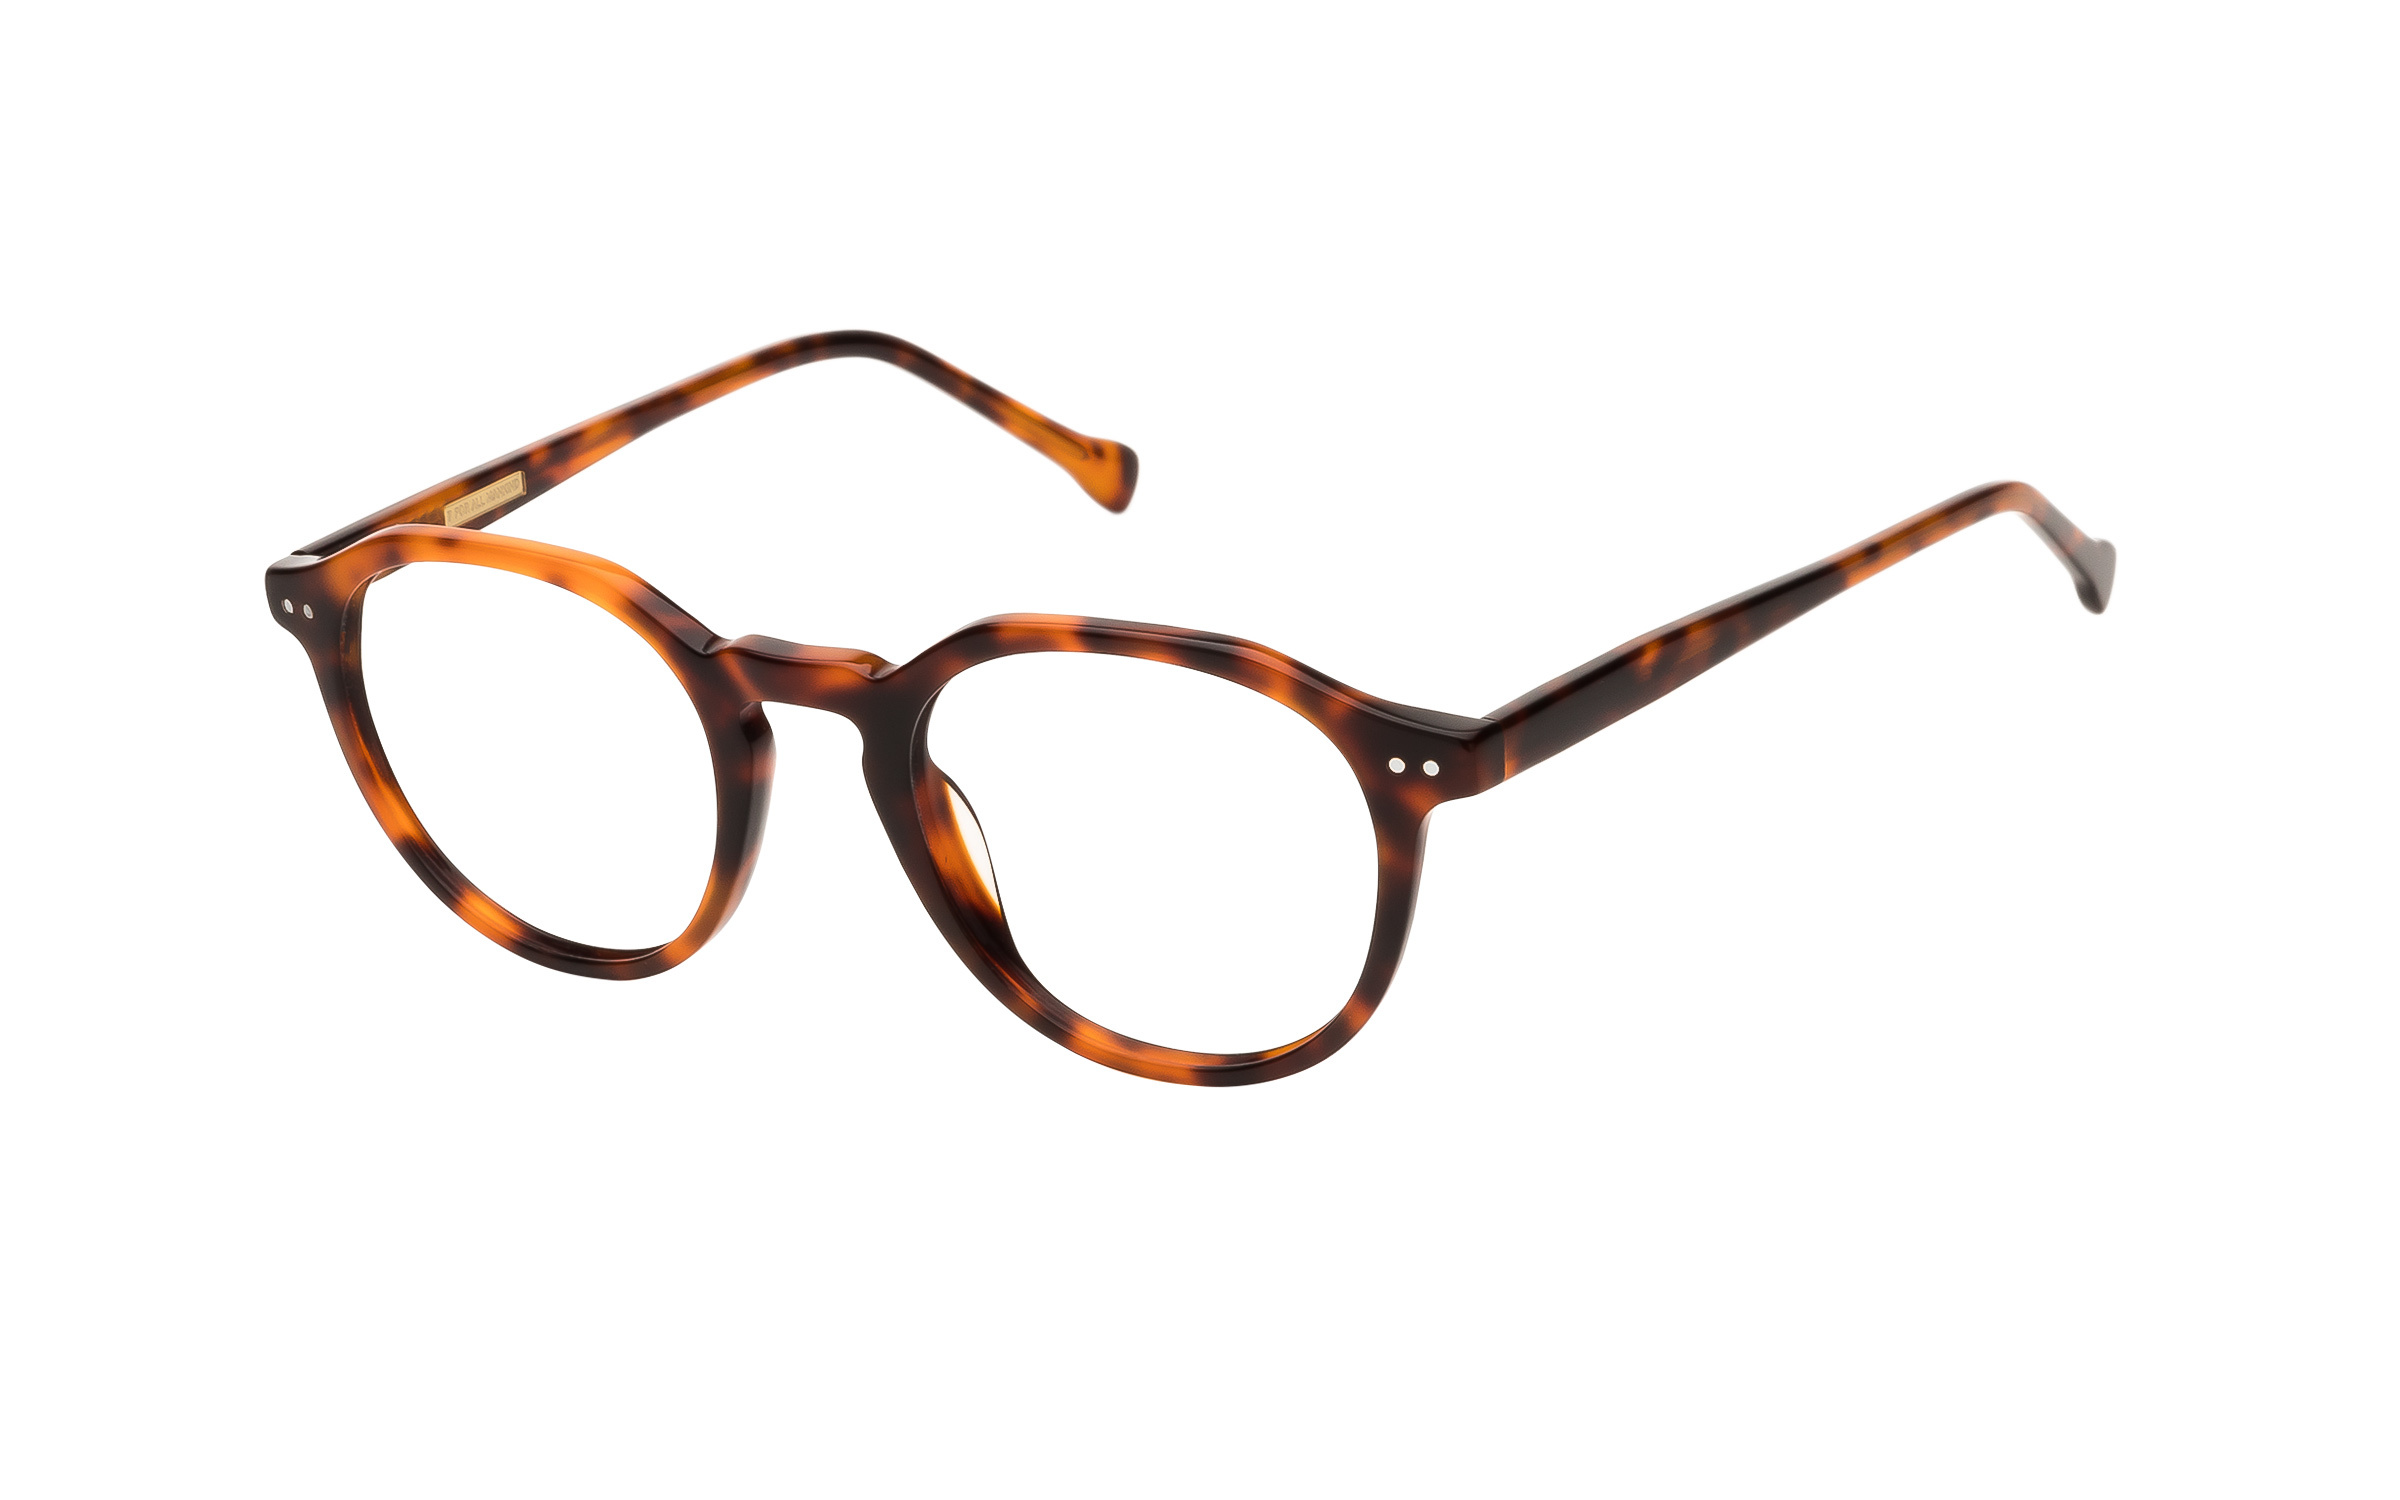 7 for All Mankind Glasses Round Tortoise/Brown Online Clearly